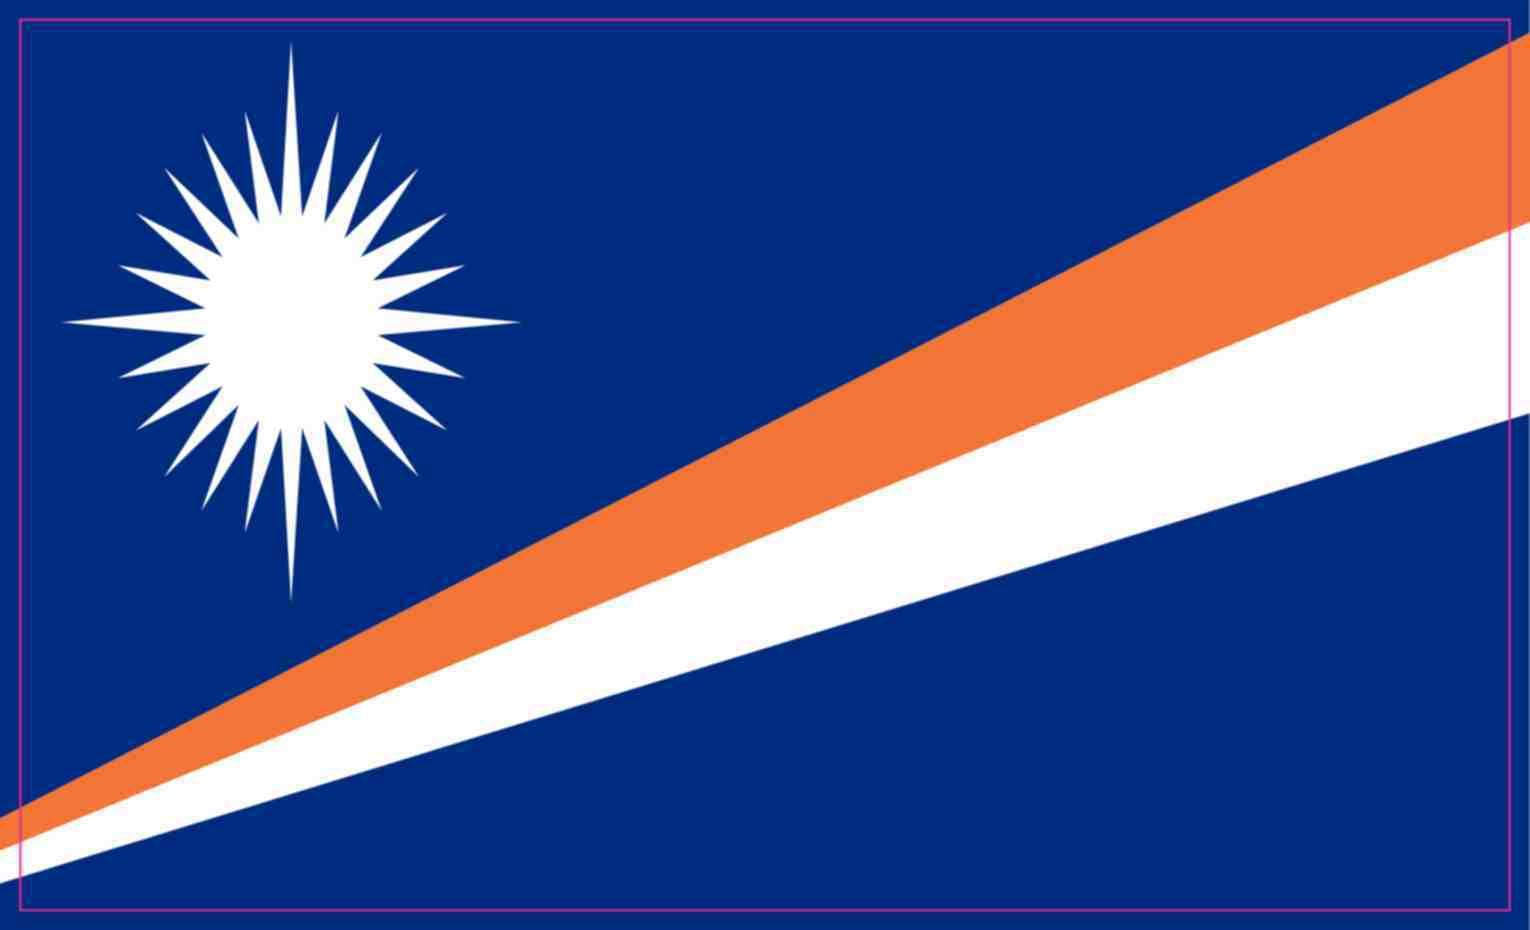 5x3 Flag Of The Marshall Islands Sticker Truck Bumper Stickers Vinyl Decal Truck Bumper Stickers Bumper Stickers Marshall Islands Flag [ 930 x 1530 Pixel ]